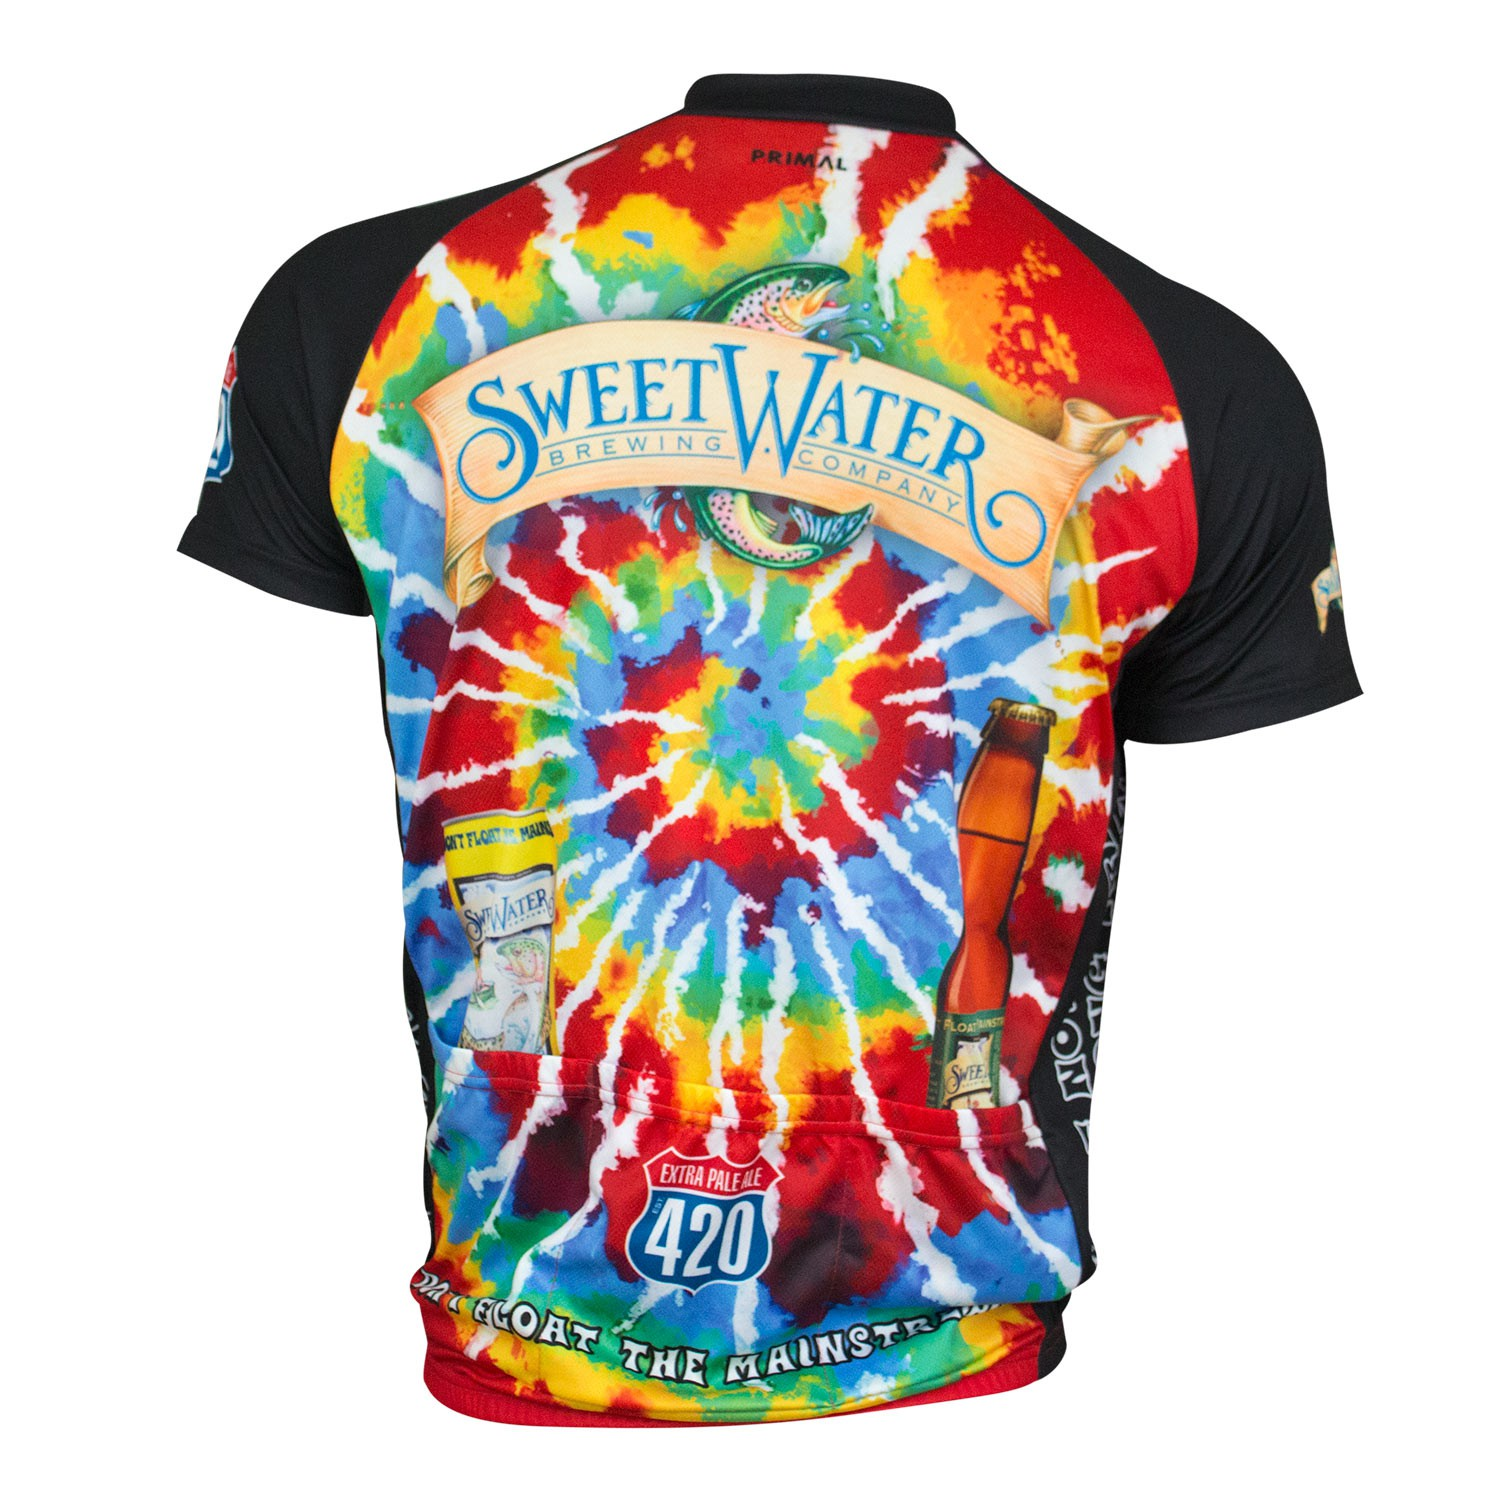 Sweetwater Brewing Cycling Jersey